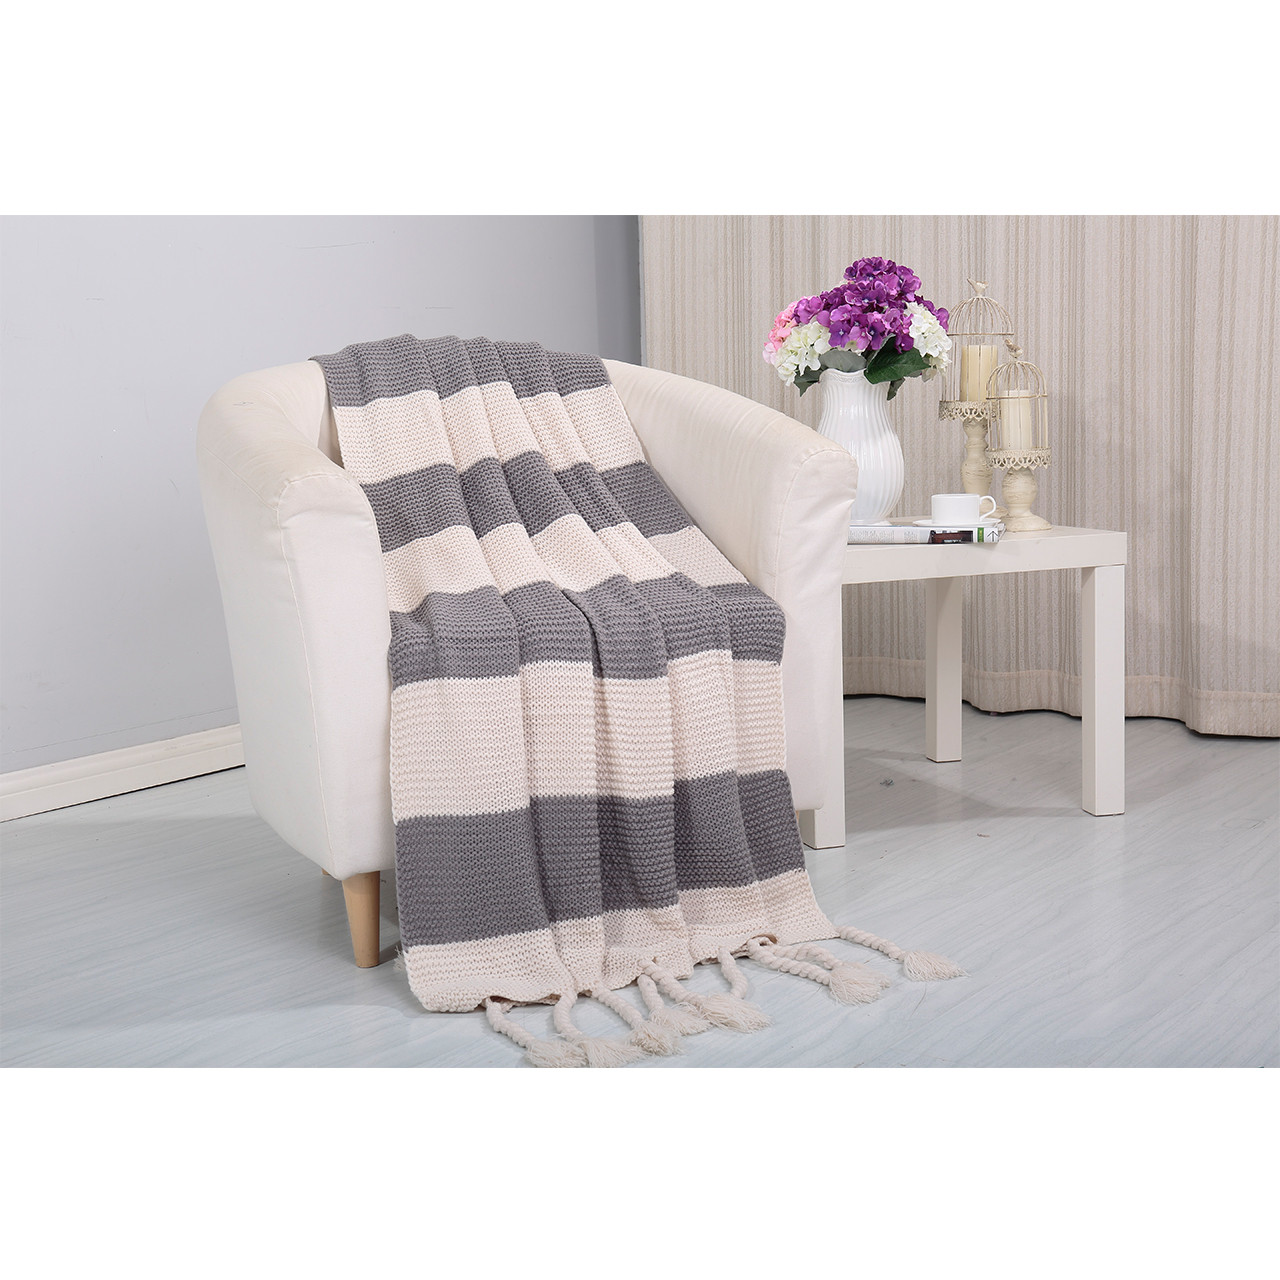 Vintage Knitted Throw Couch Cover Sofa Blanket 50x60